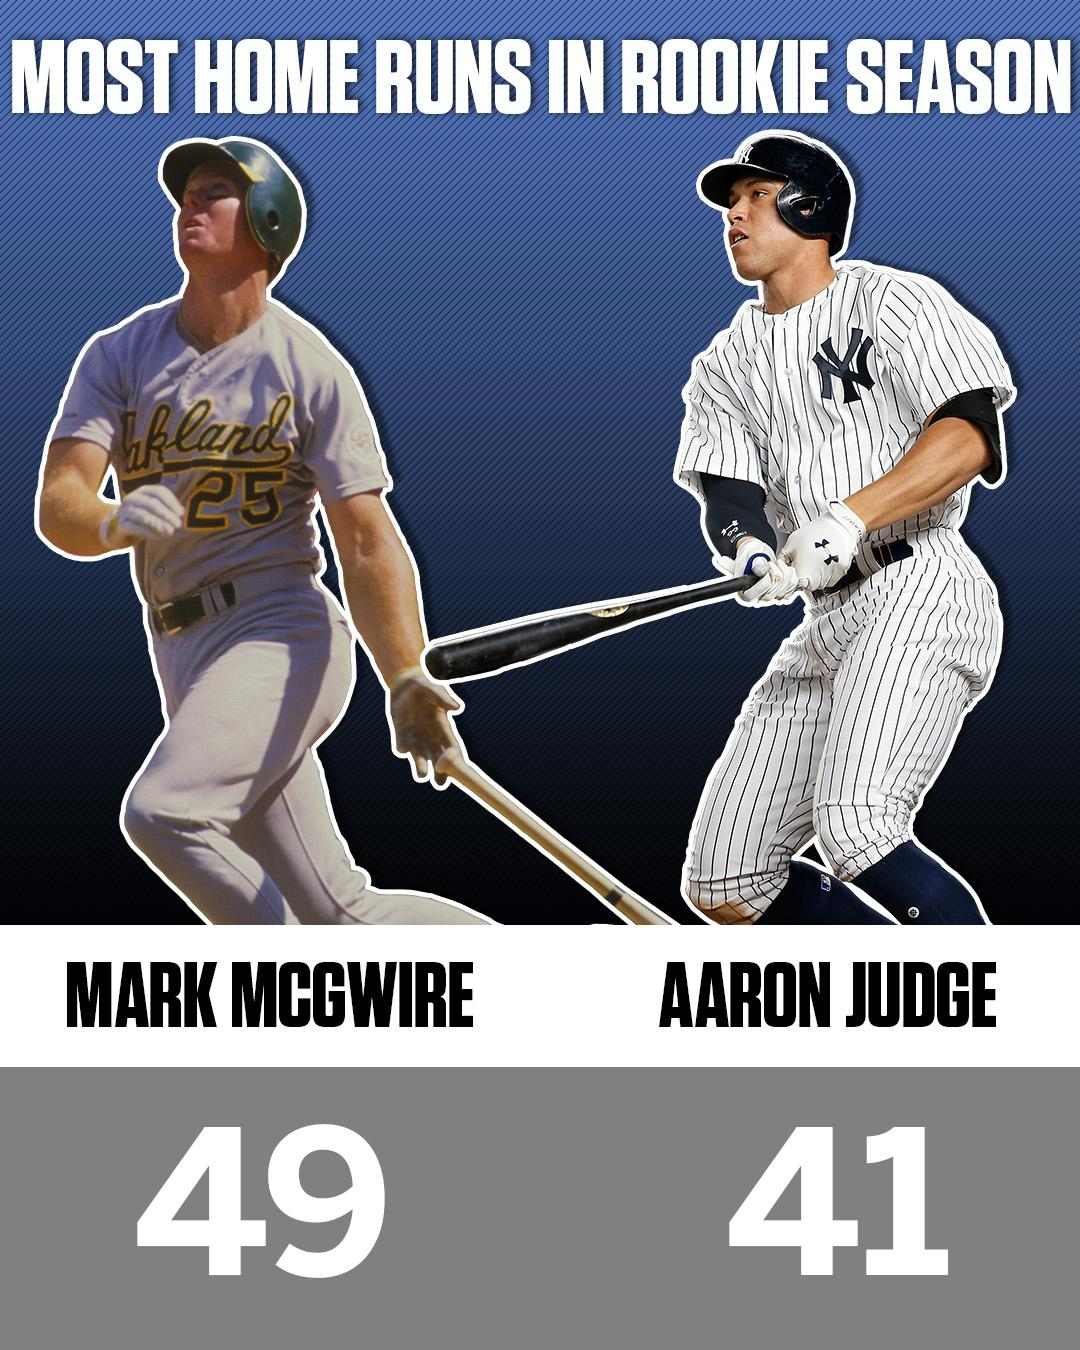 Aaron Judge joins Mark McGwire as the only players to have 40 homers in their rookie seasons. https://t.co/WdEmz08YSX